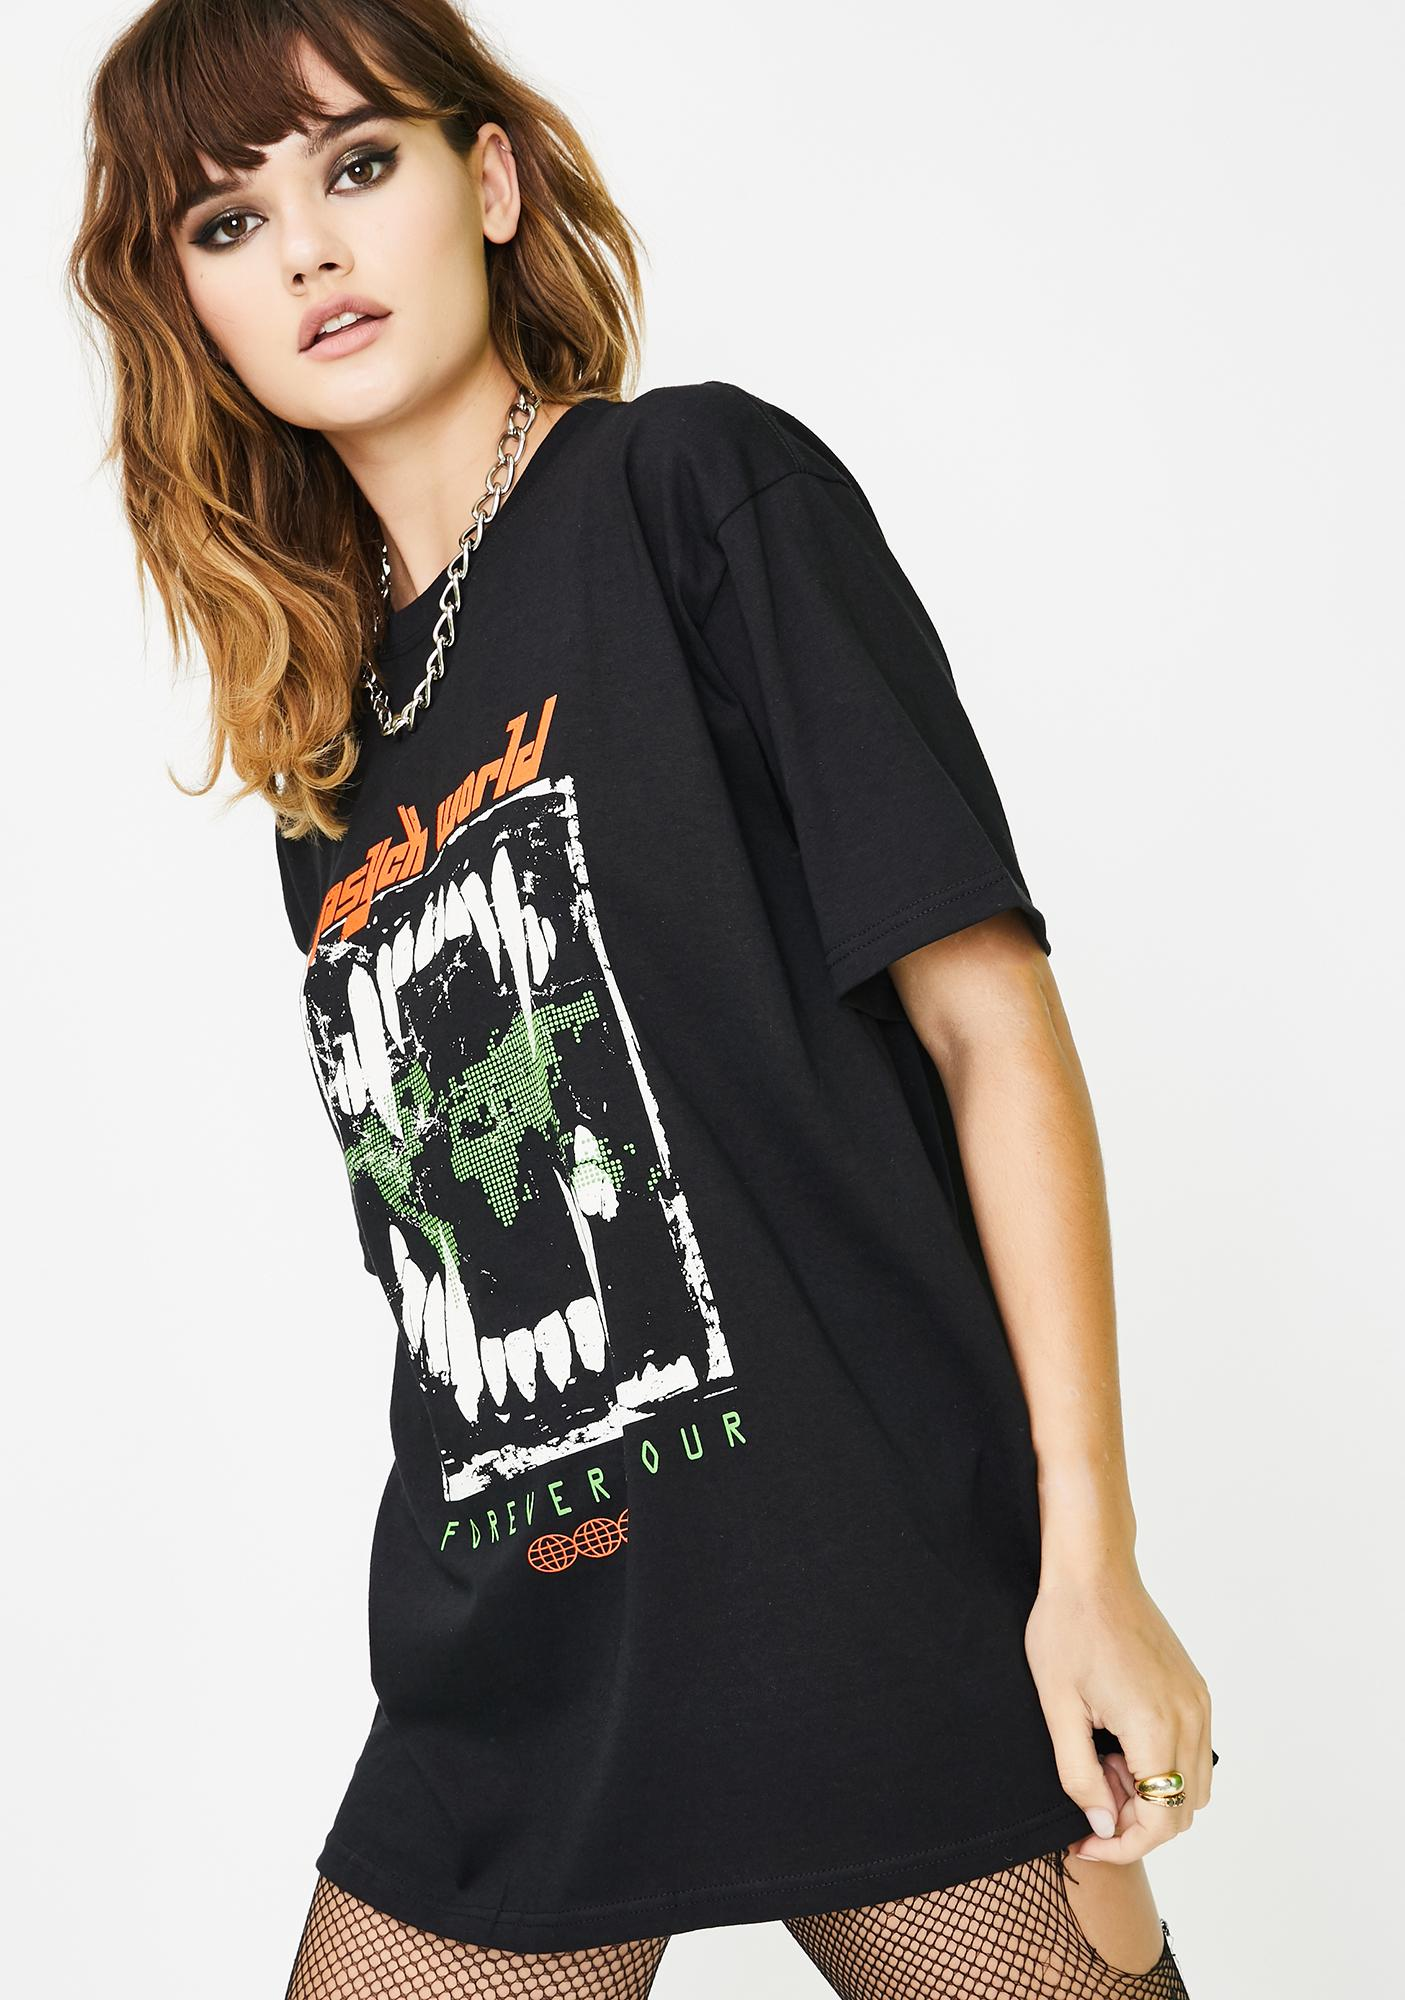 ILL INTENT Psycho Graphic Tee